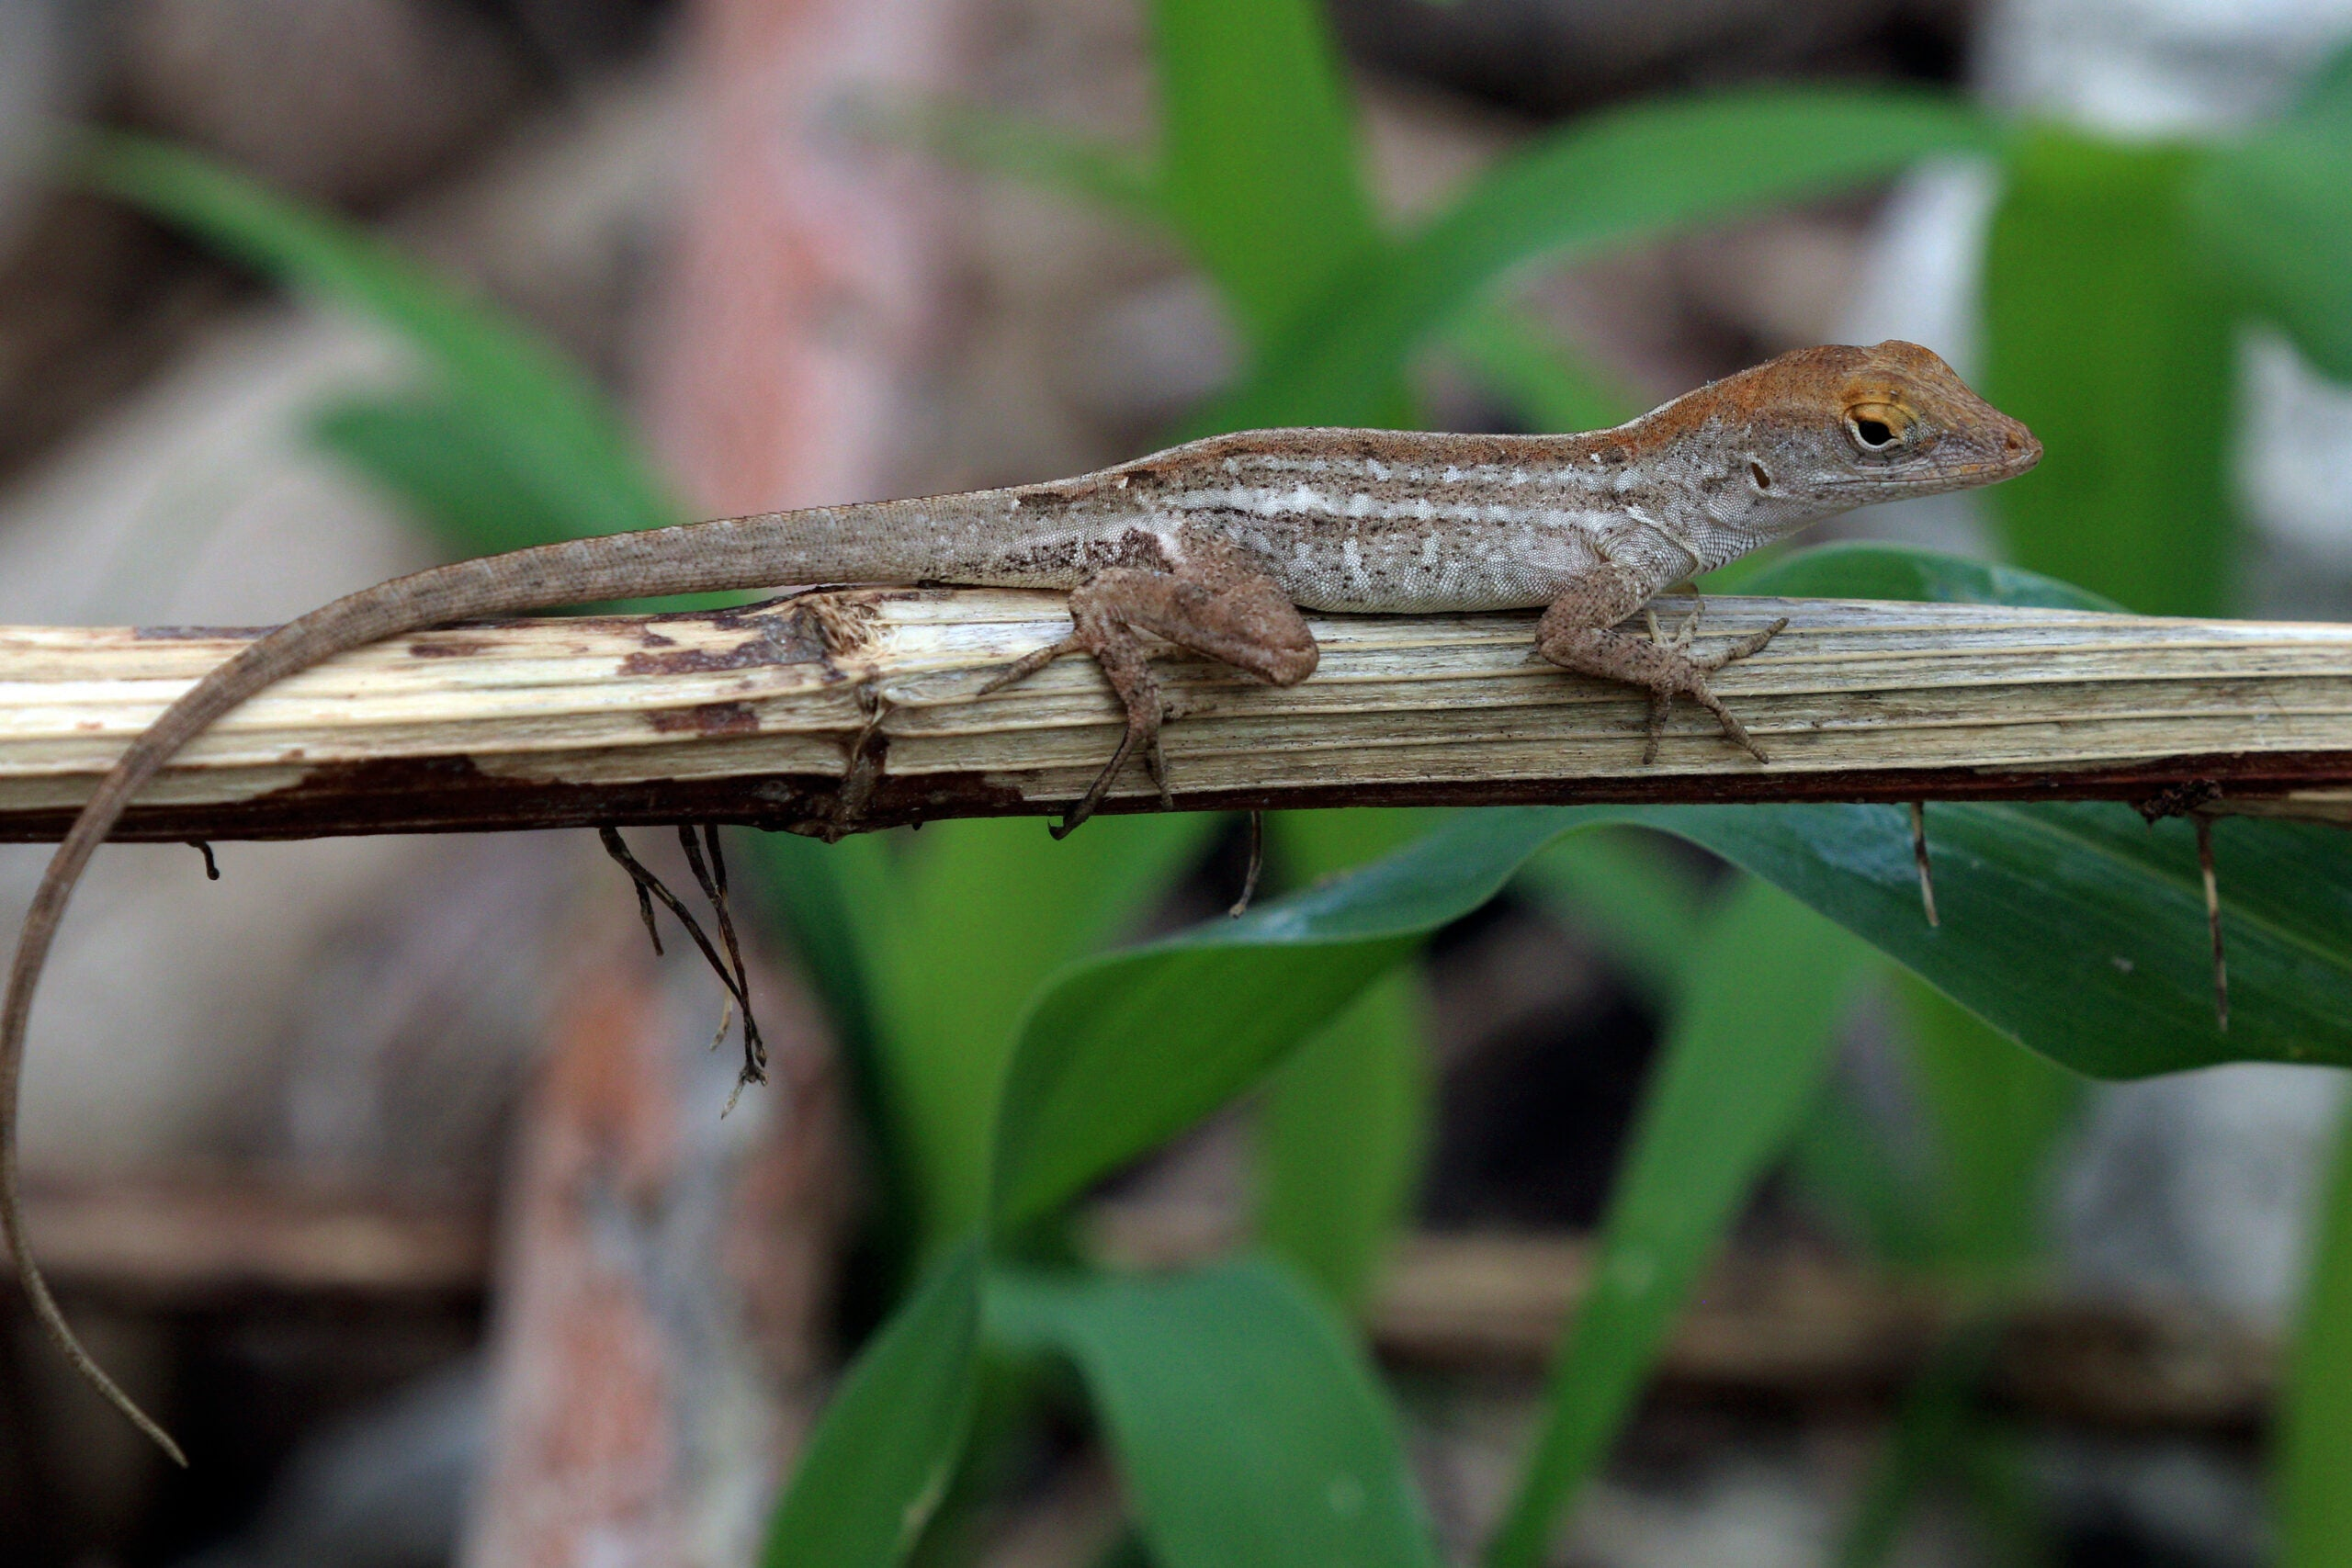 Caught in a race against climate change, lizards hit an evolutionary dead end